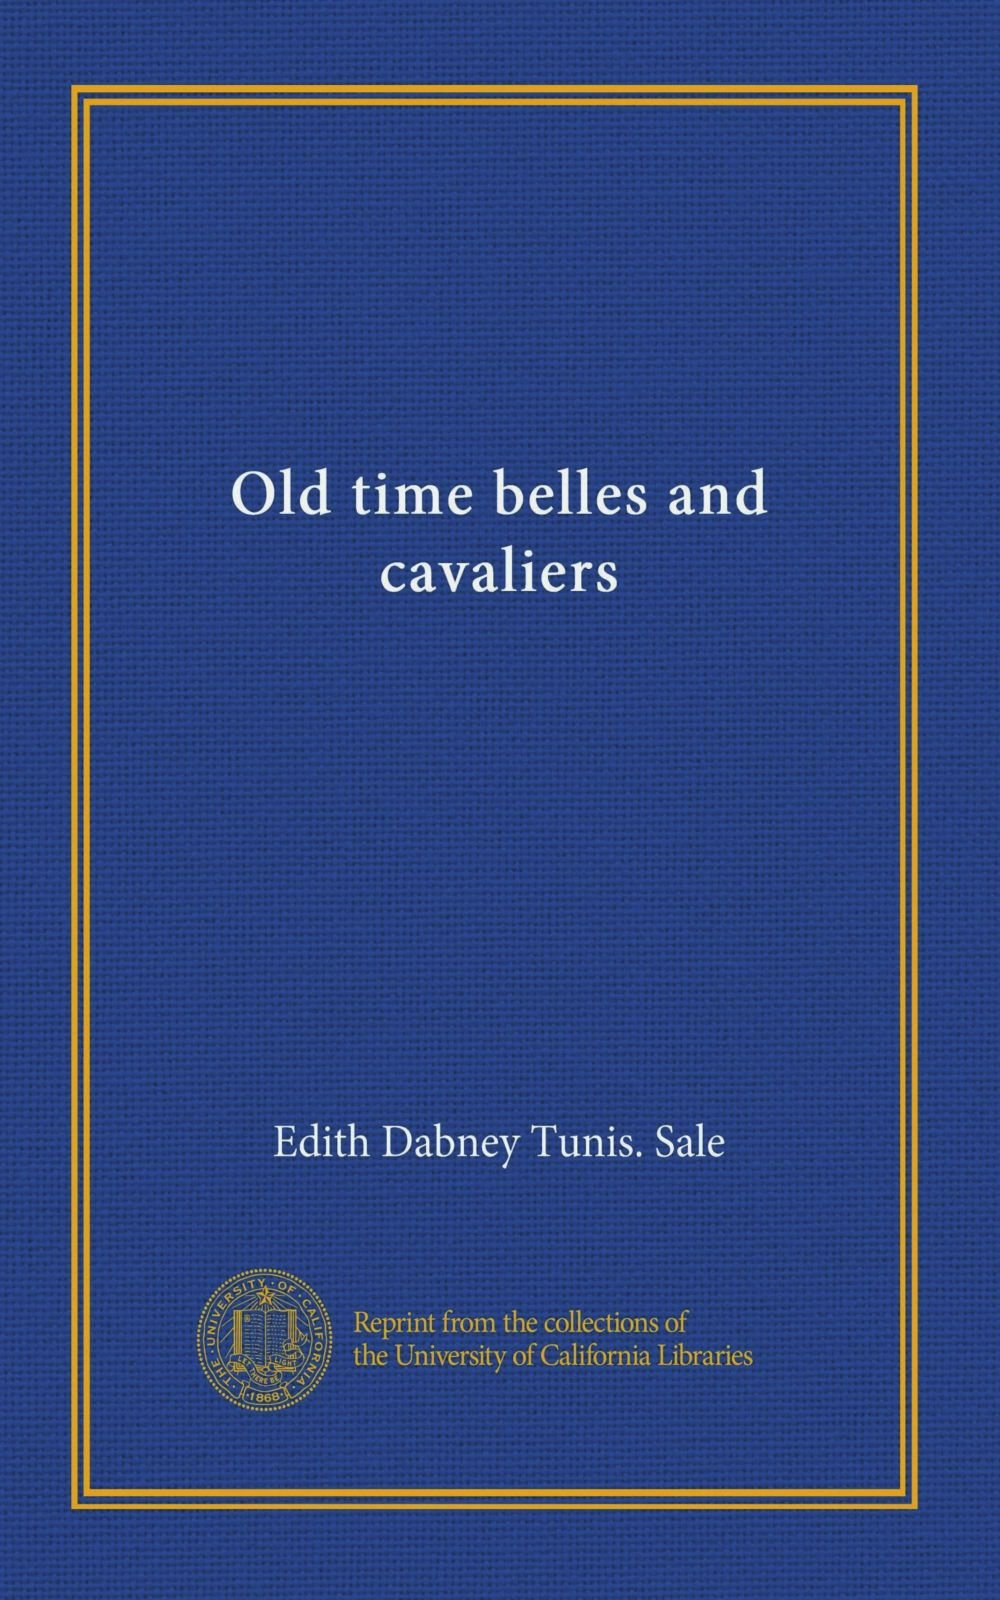 Old time belles and cavaliers pdf